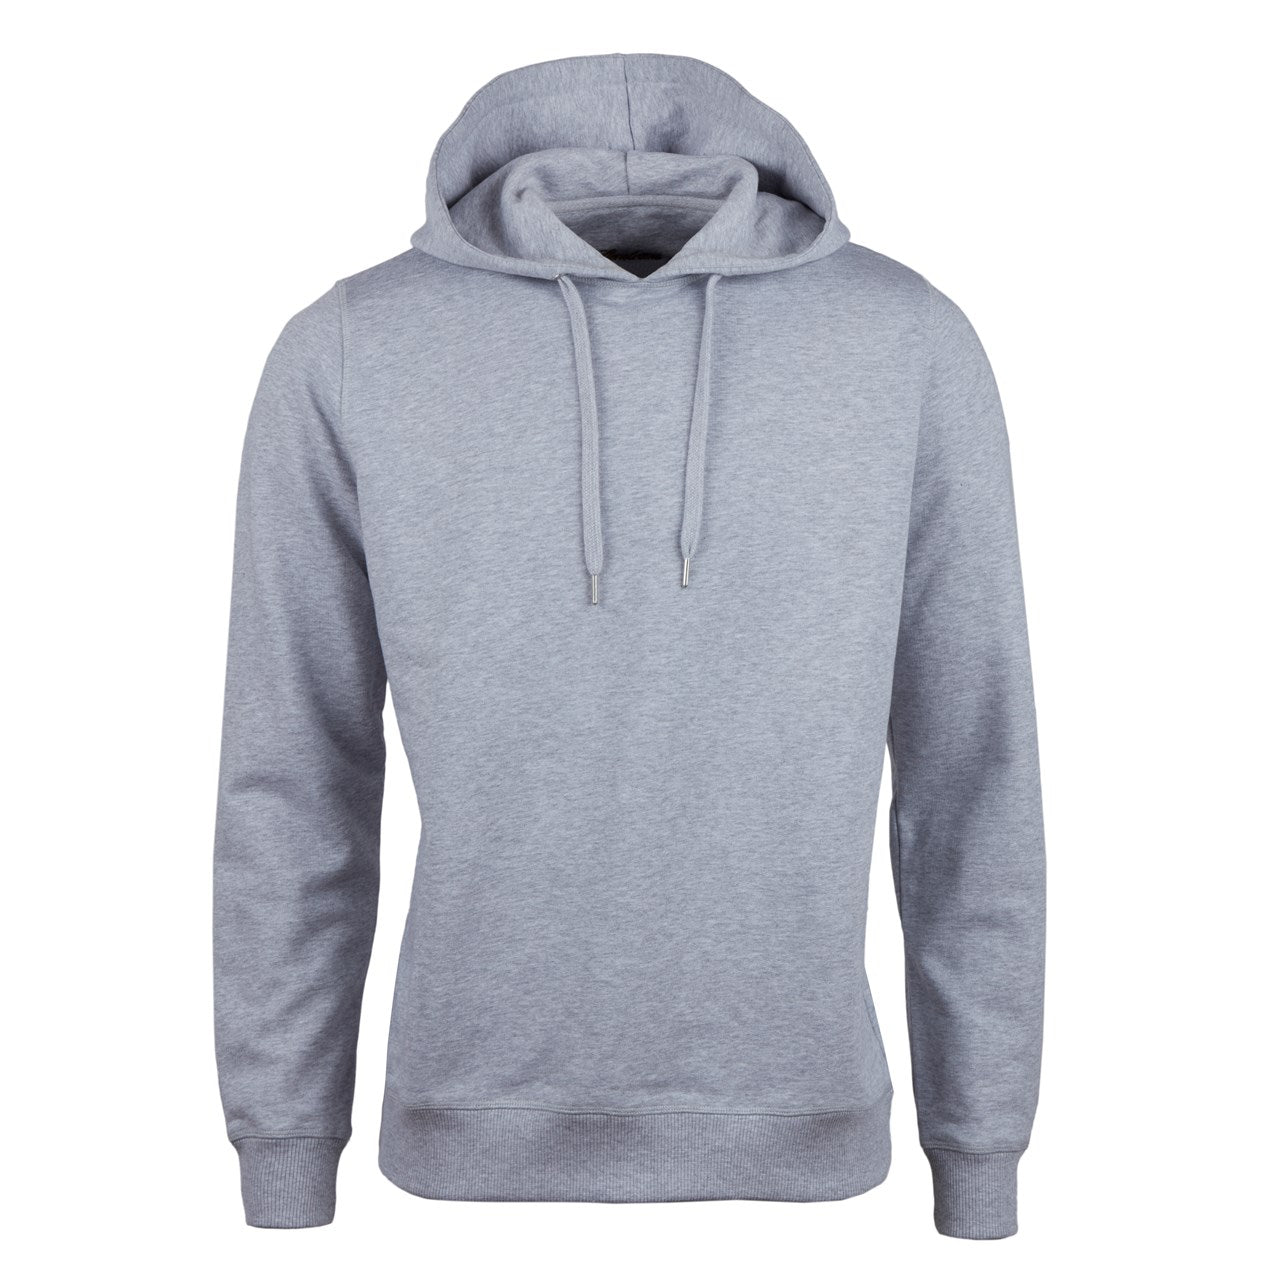 Stenstroms - Grey Cotton College Hoodie 4400462487300